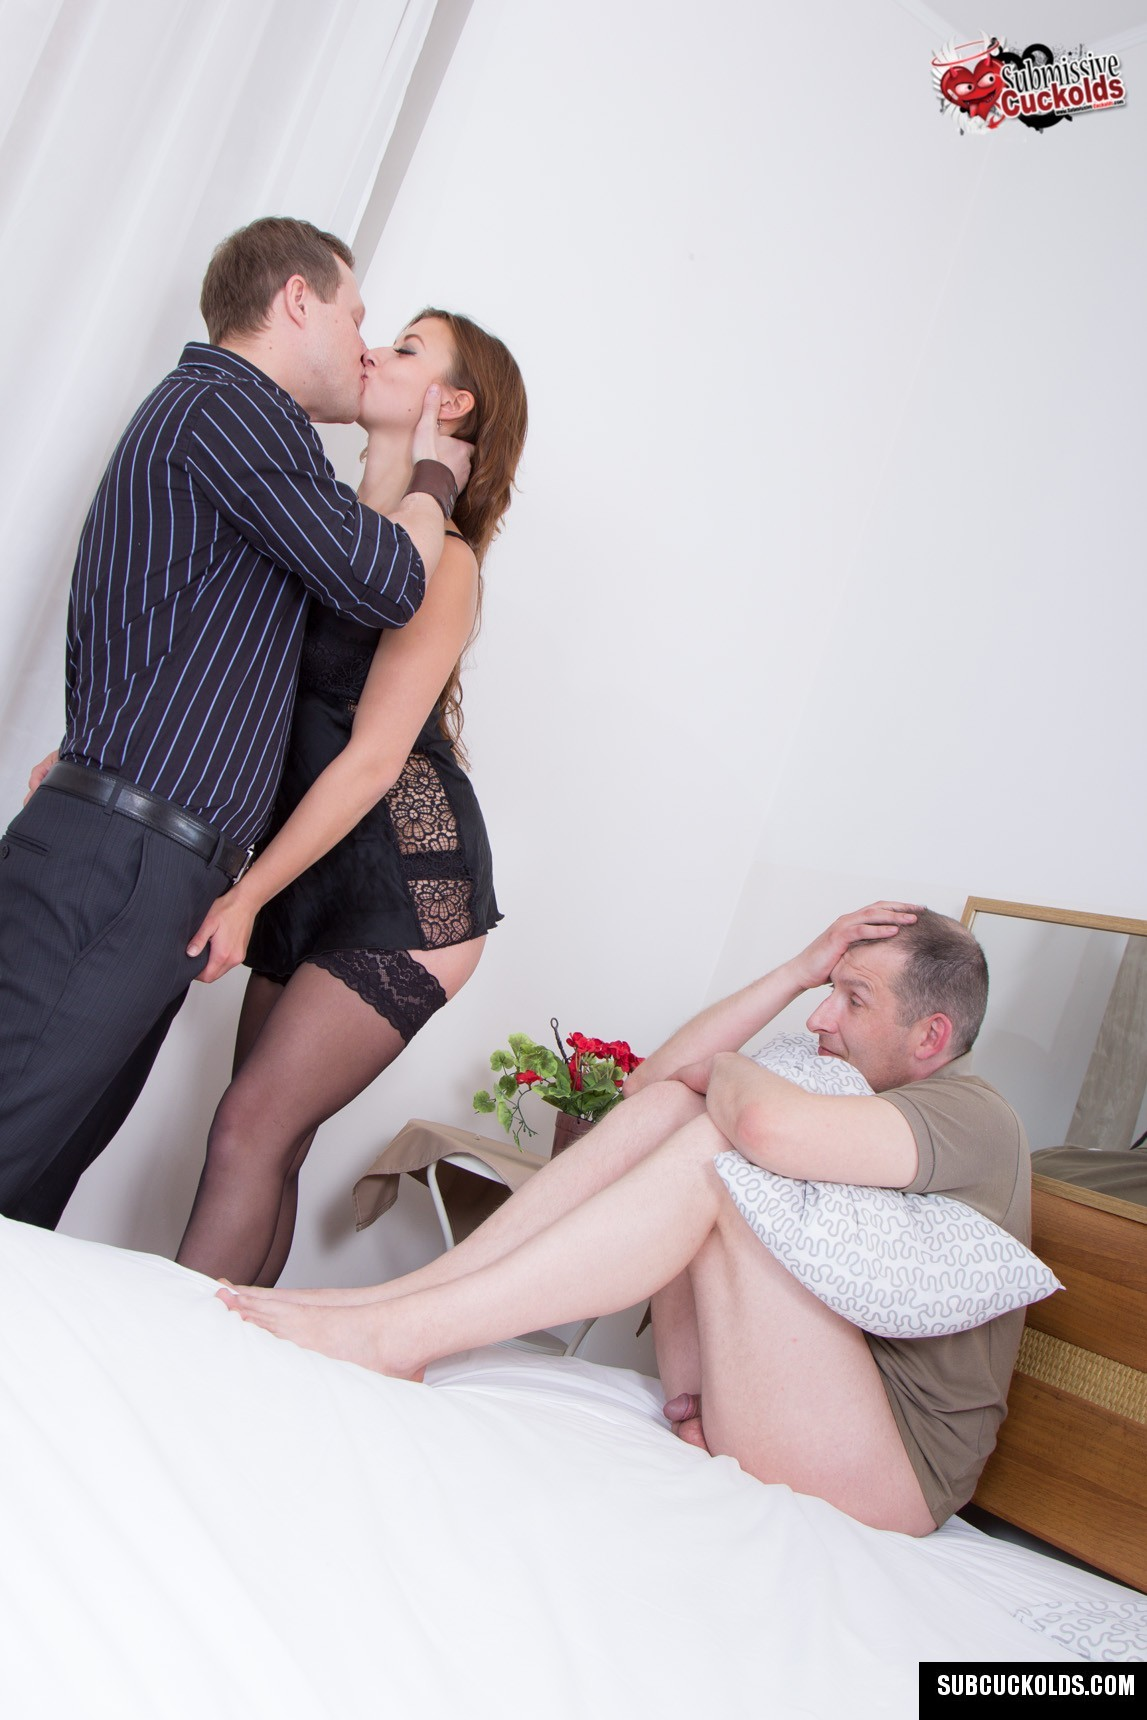 A young cuckold relationship part 2 - 3 part 4